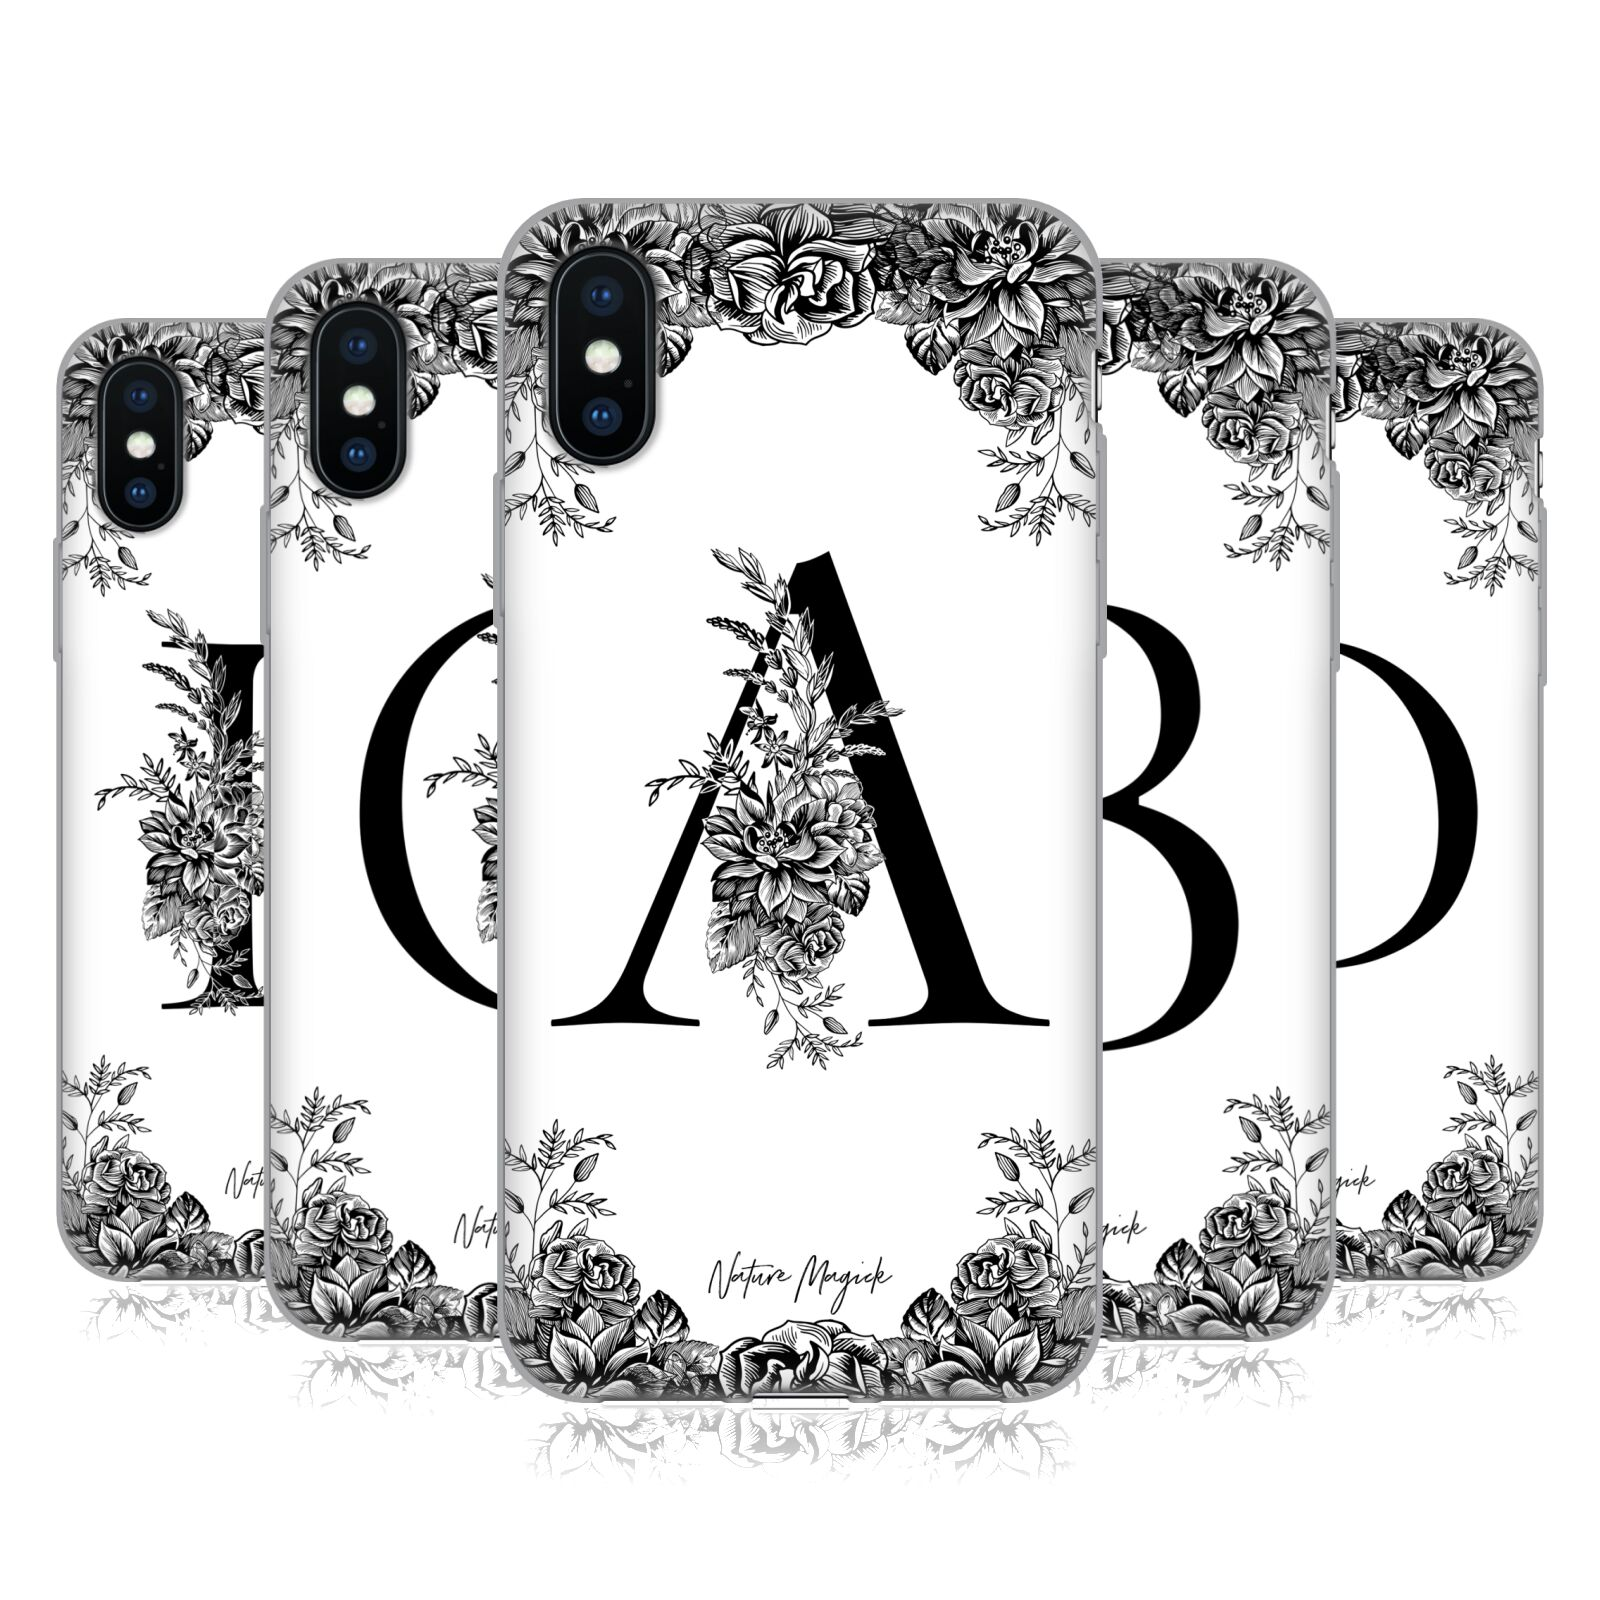 Nature Magick <!--translate-lineup-->B & W Floral Monogram 1<!--translate-lineup-->